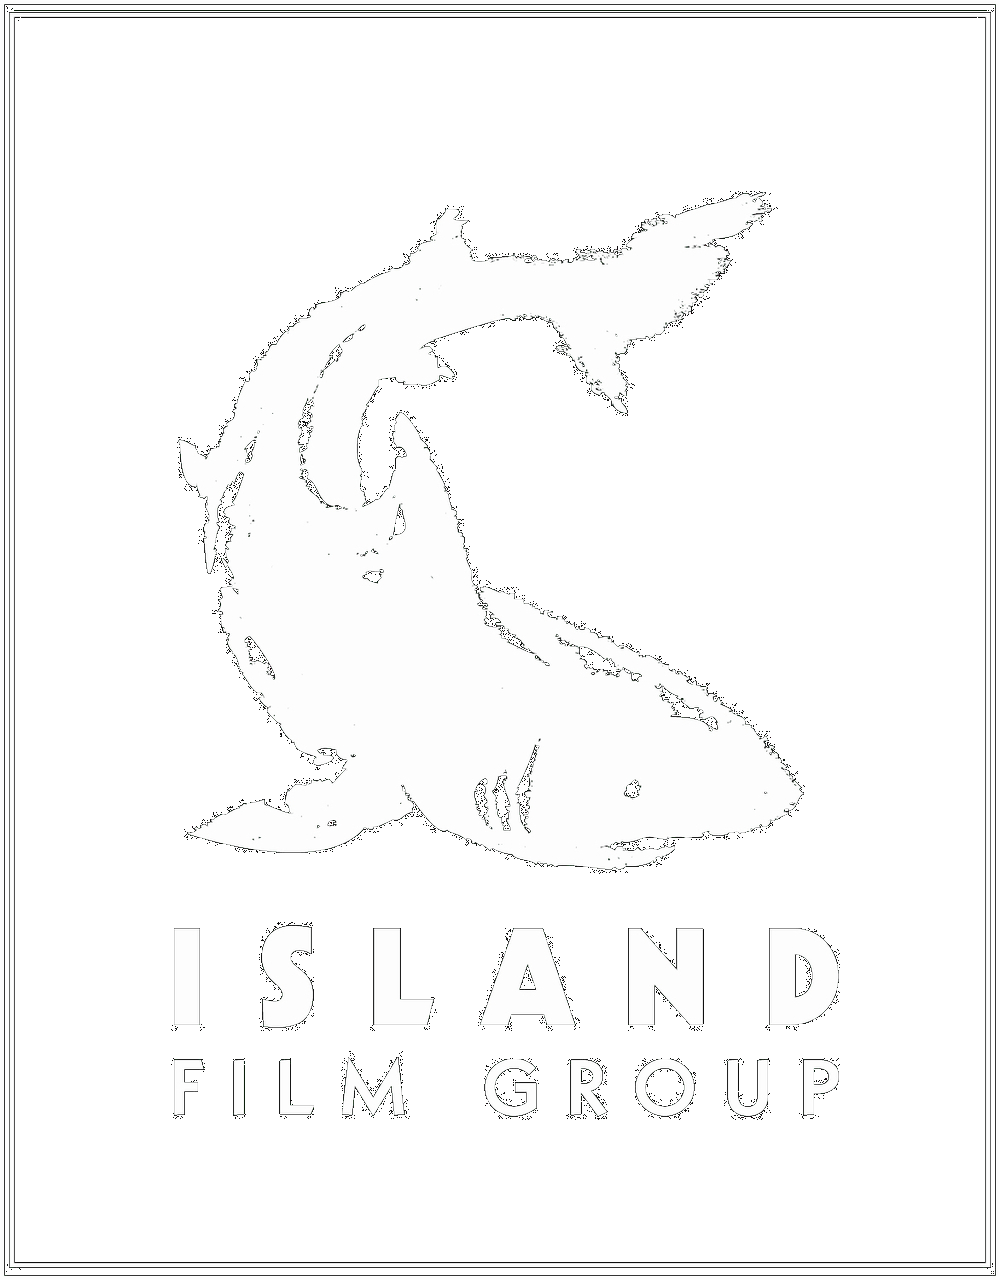 Island Film Group